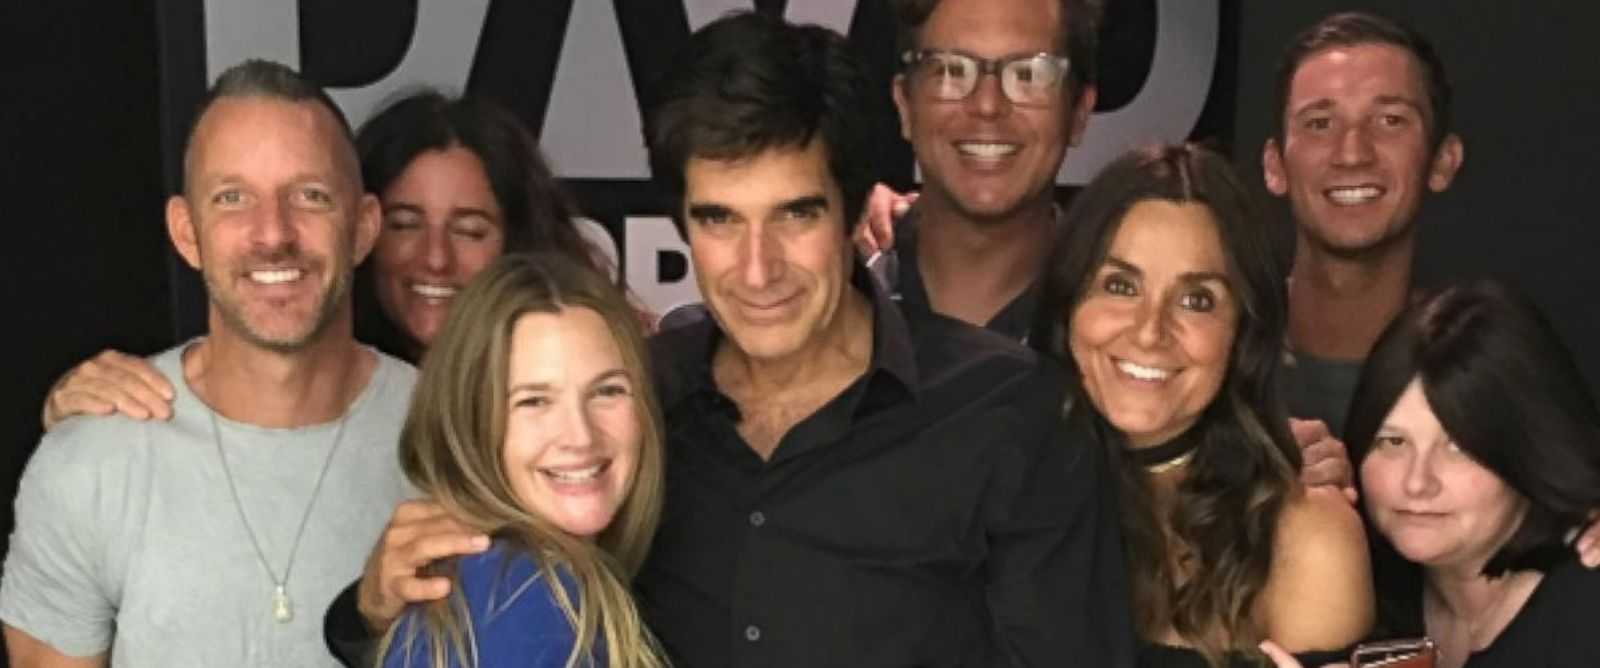 david copperfield videos at abc news video archive at abcnews com drew barrymore and friends go on epic vacation to las vegas